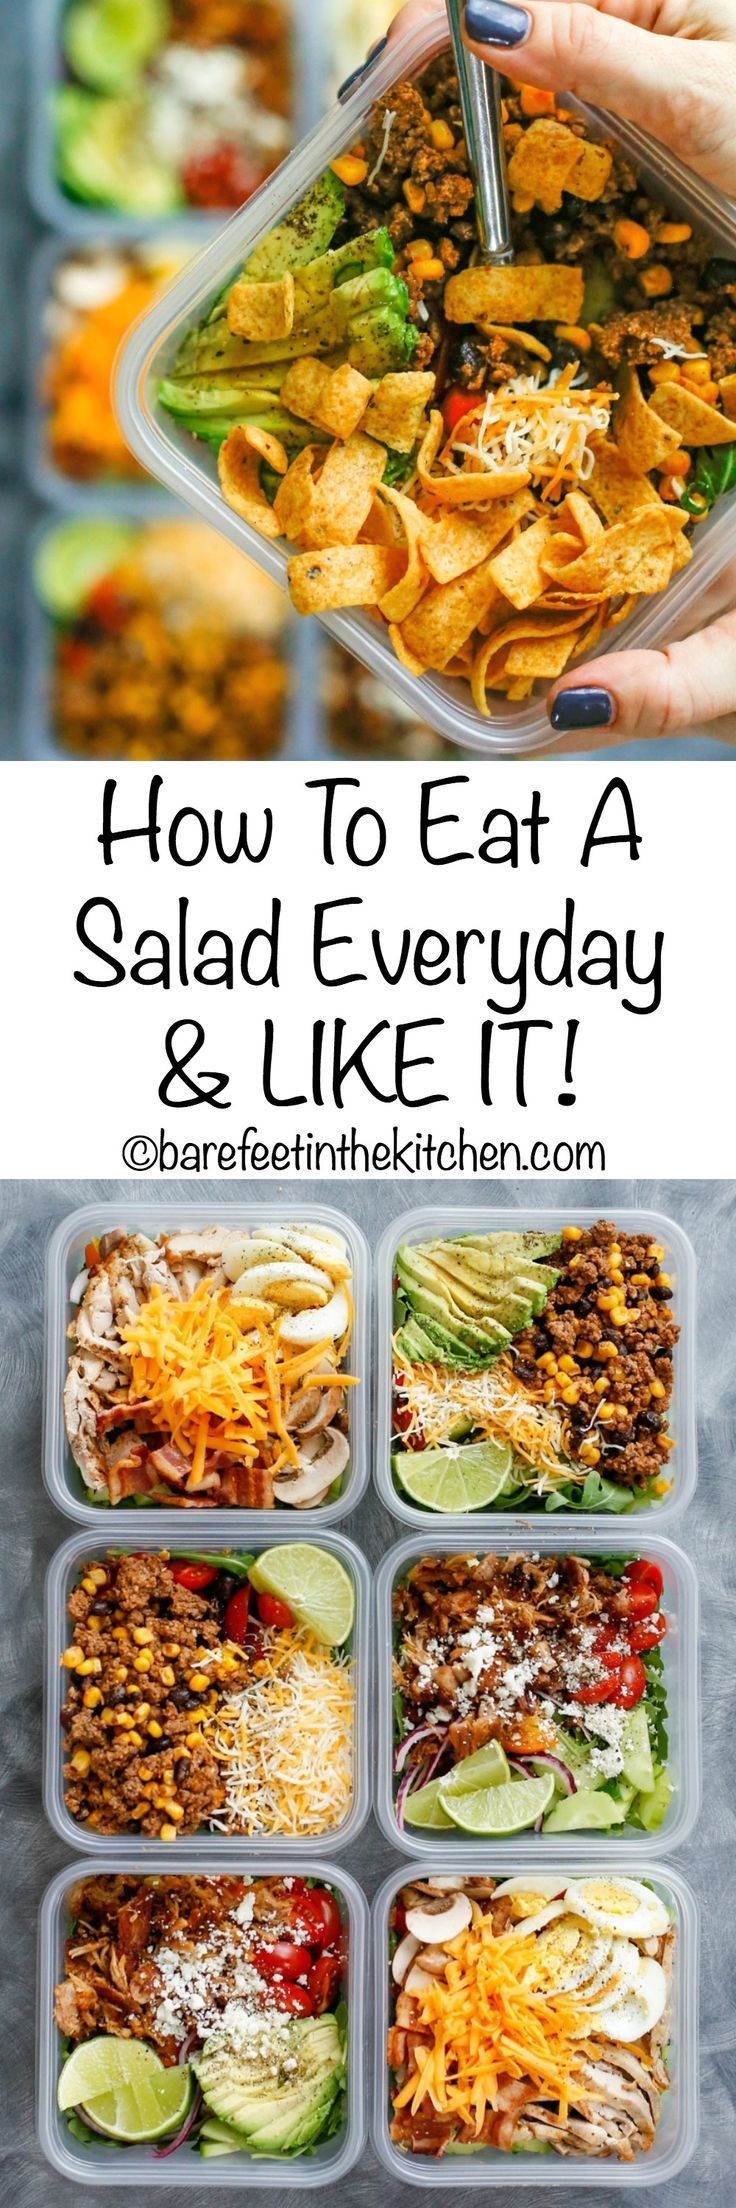 How To Eat Salad Everyday LIKE IT Aka The Fritos Diet Recipes Healthy LunchMeal